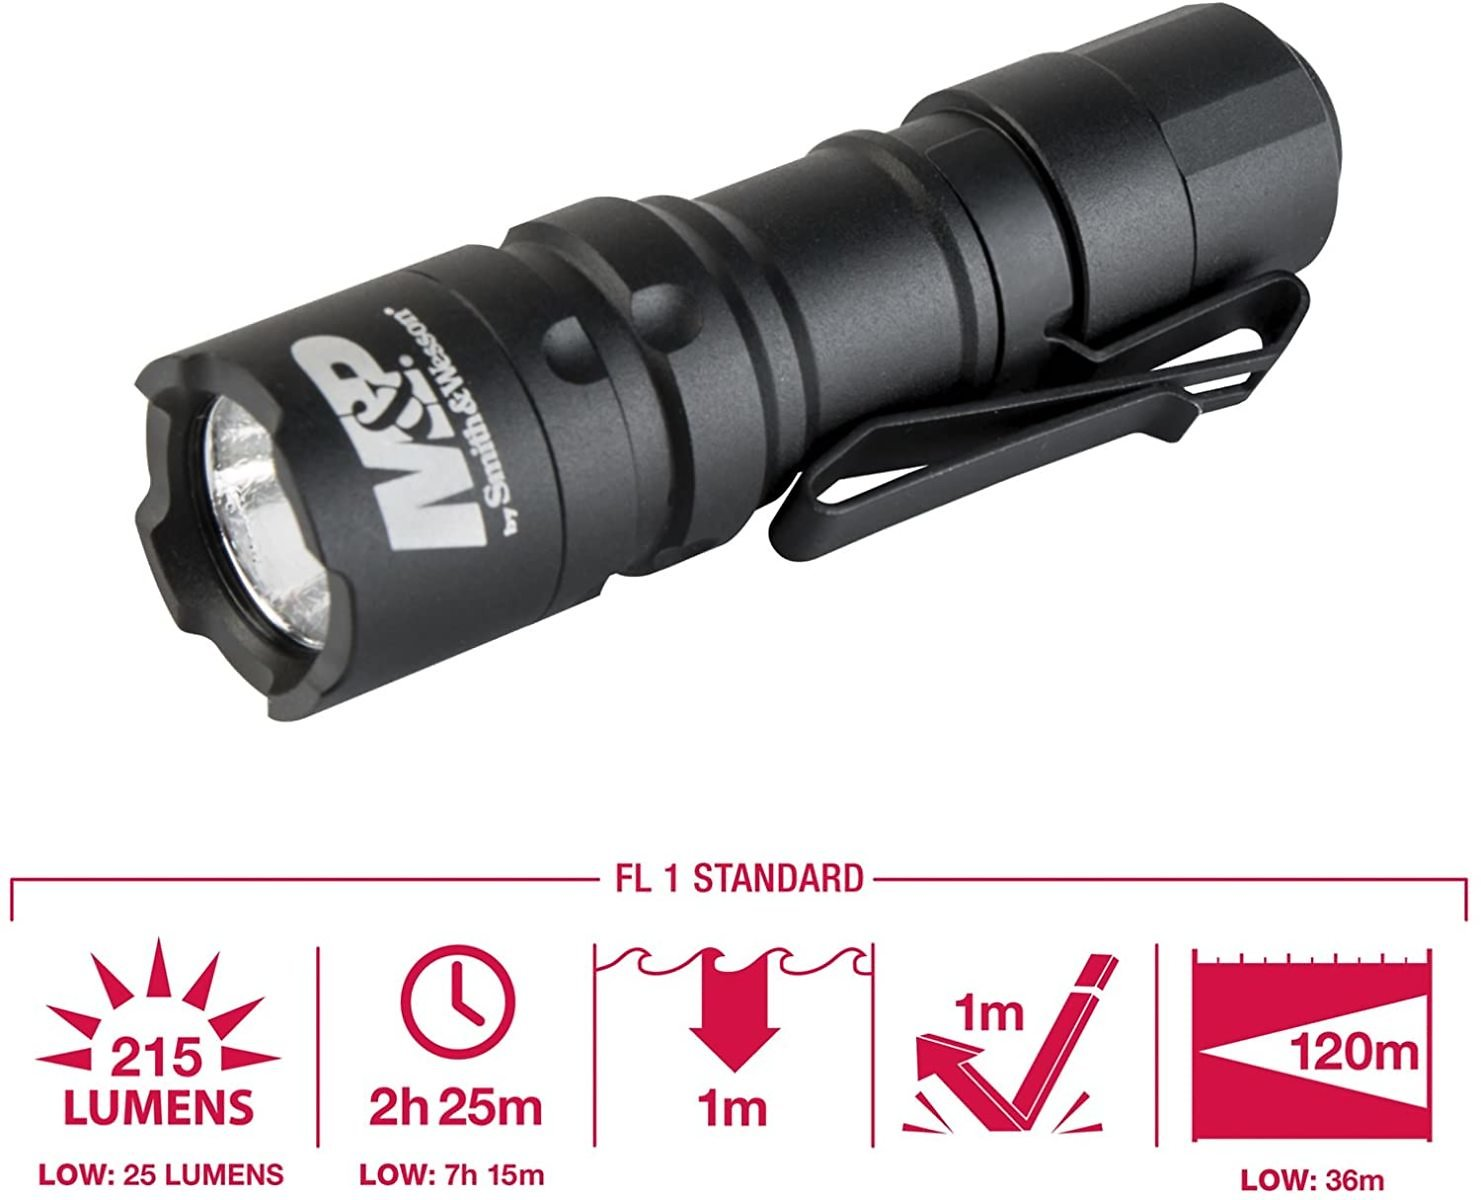 Smith & Wesson M&P Delta Force CS 1xCR123 215 Lumen Flashlight with 4 Modes